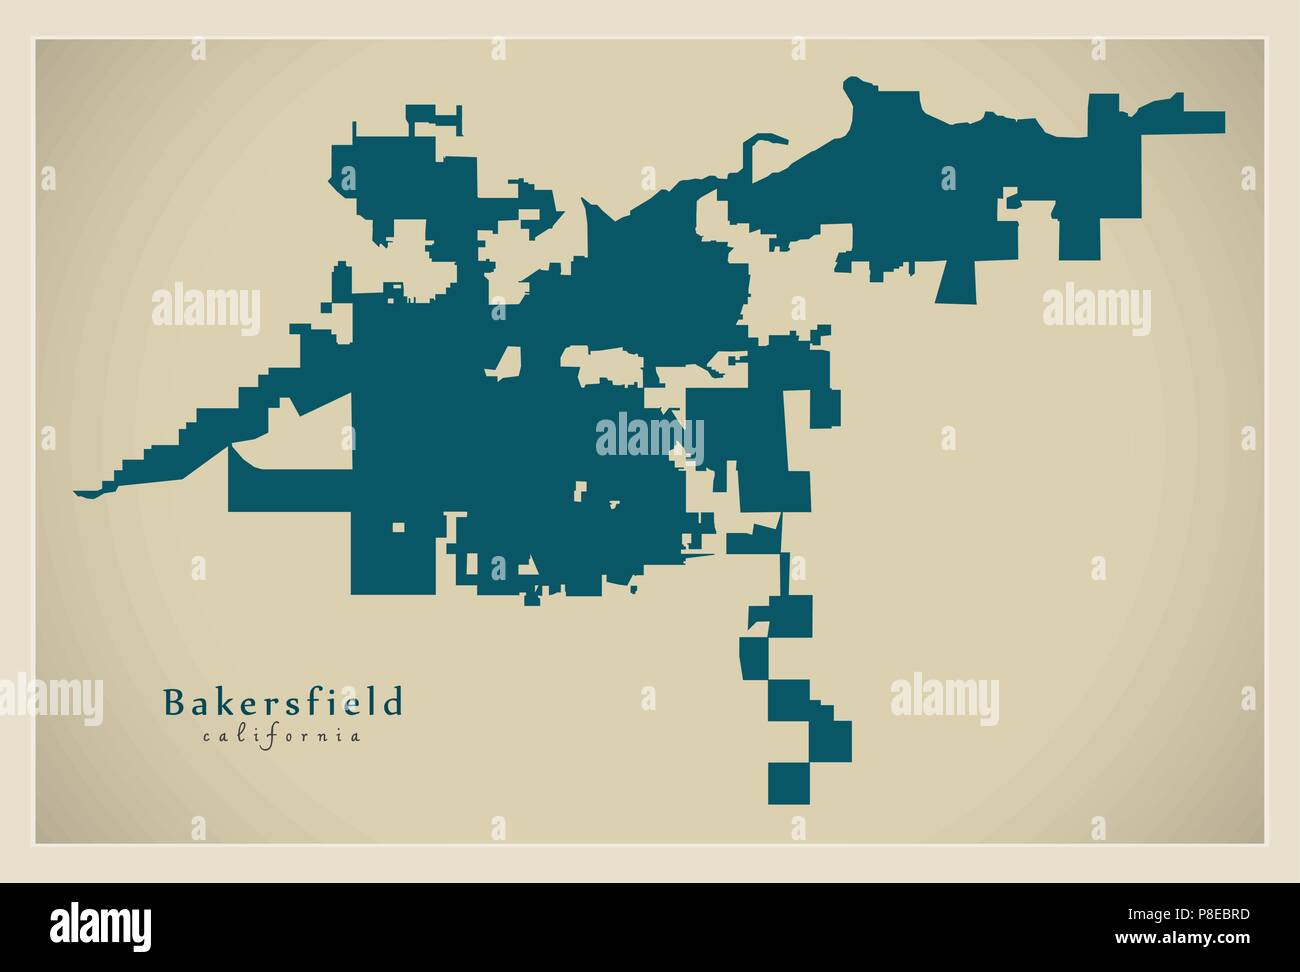 Modern City Map - Bakersfield California city of the USA Stock ... on